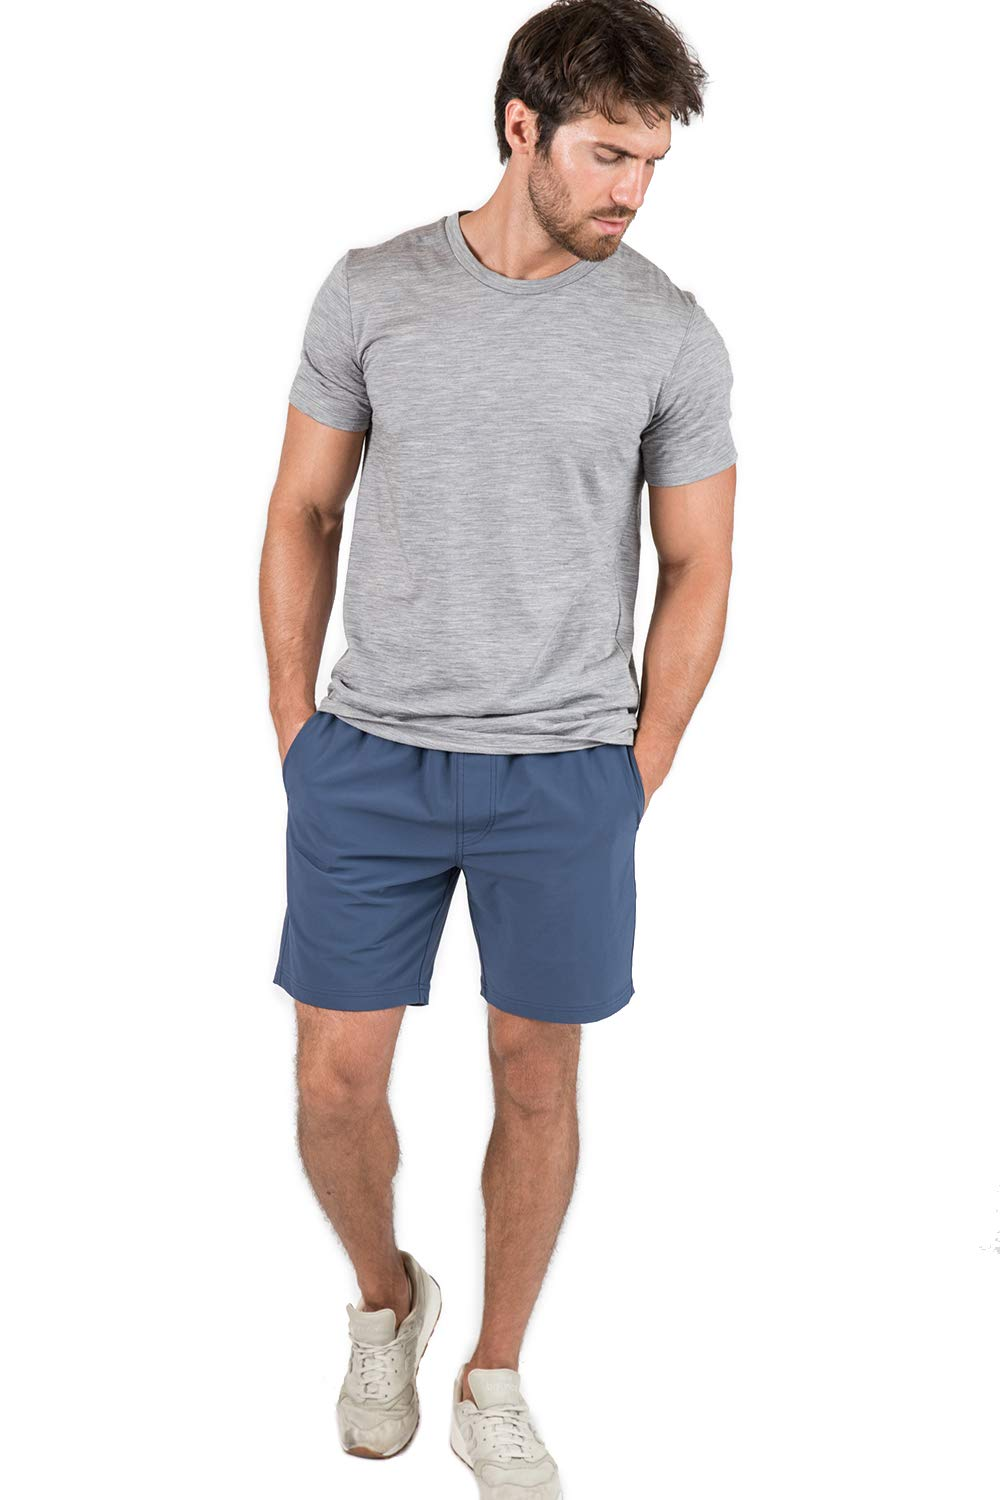 OLIVERS Apparel, Mens Water Repellent, 4-Way Stretch, All Over Short. Perfect for Running, Yoga, and Weightlifting (Small, Dark Indigo)